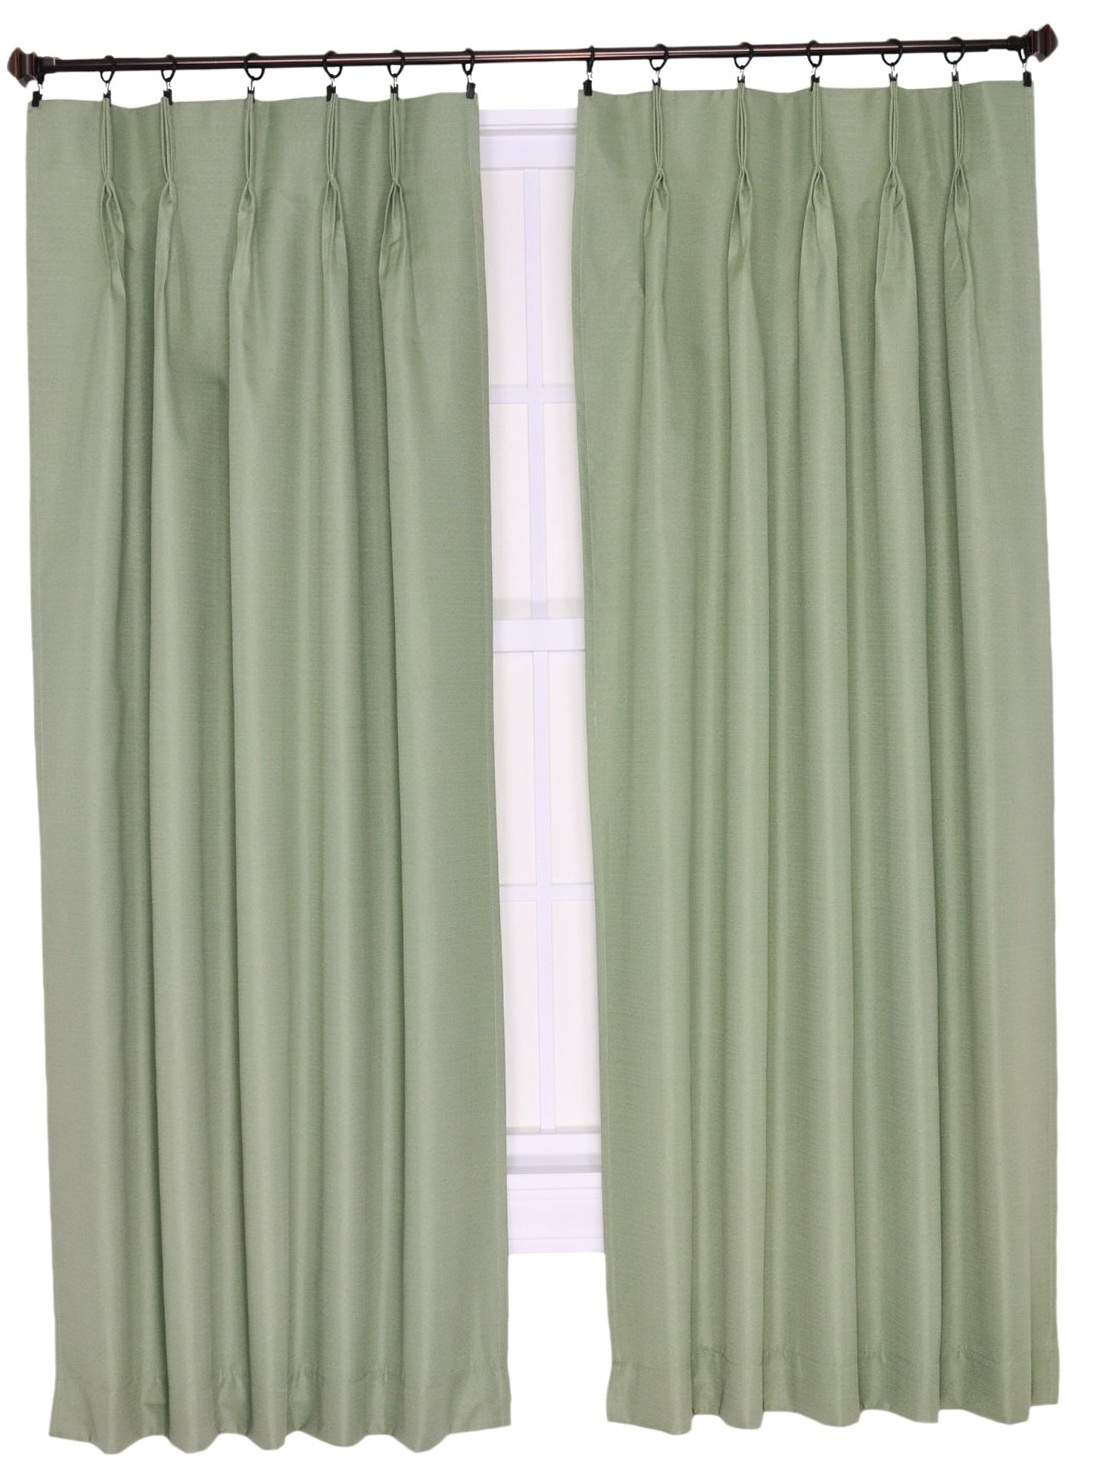 Pinch Pleated Curtains For Sliding Glass Doors